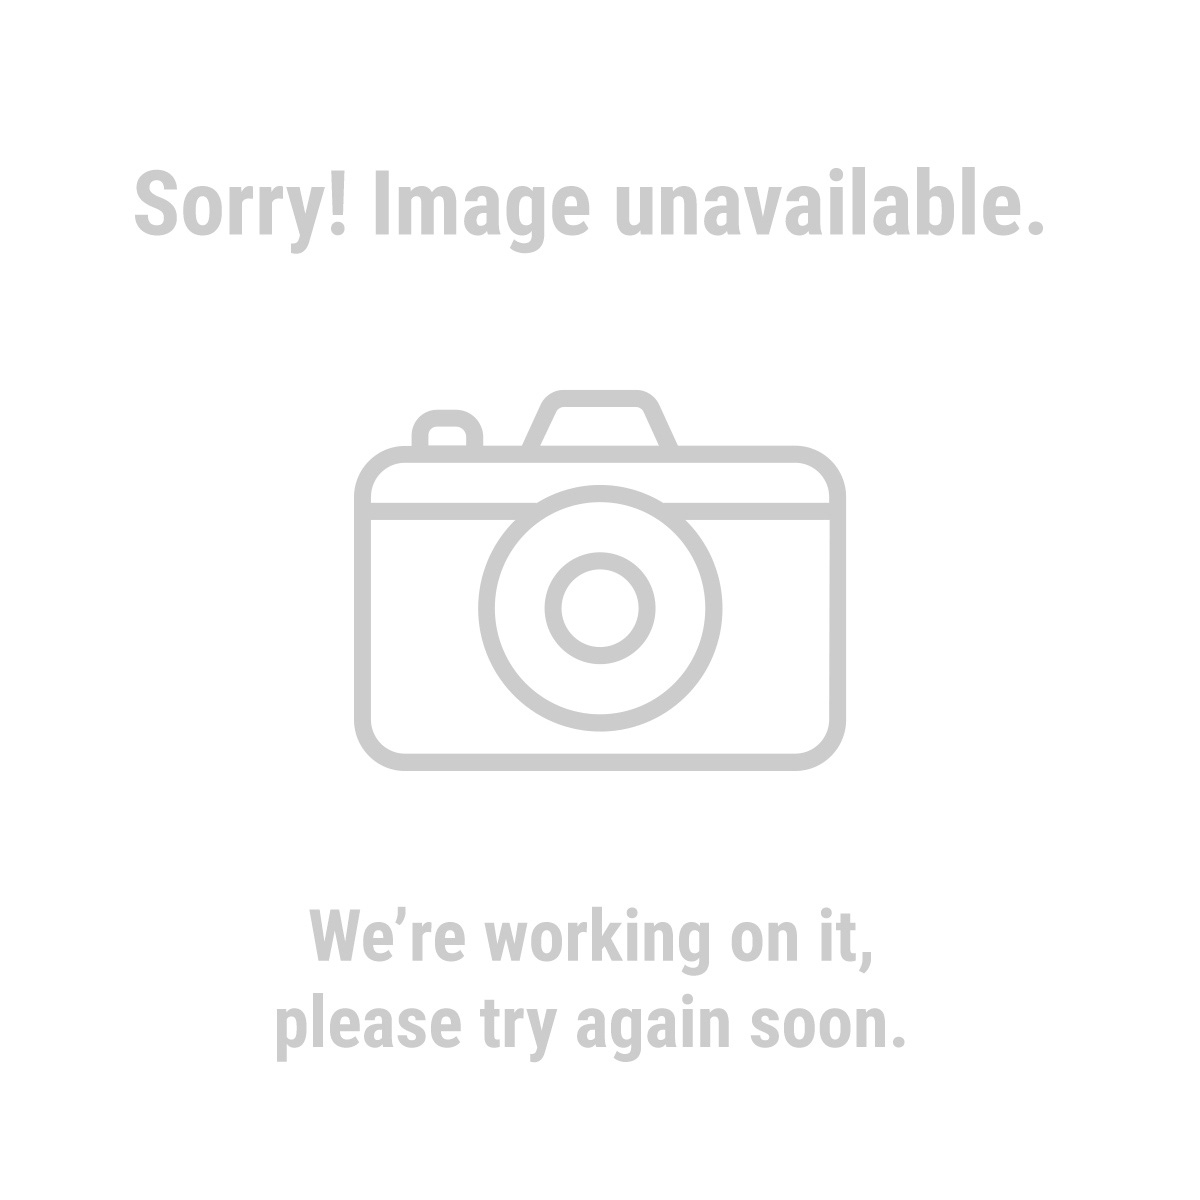 "Gordon 98503 3-1/2"" 21 LED Flashlight"